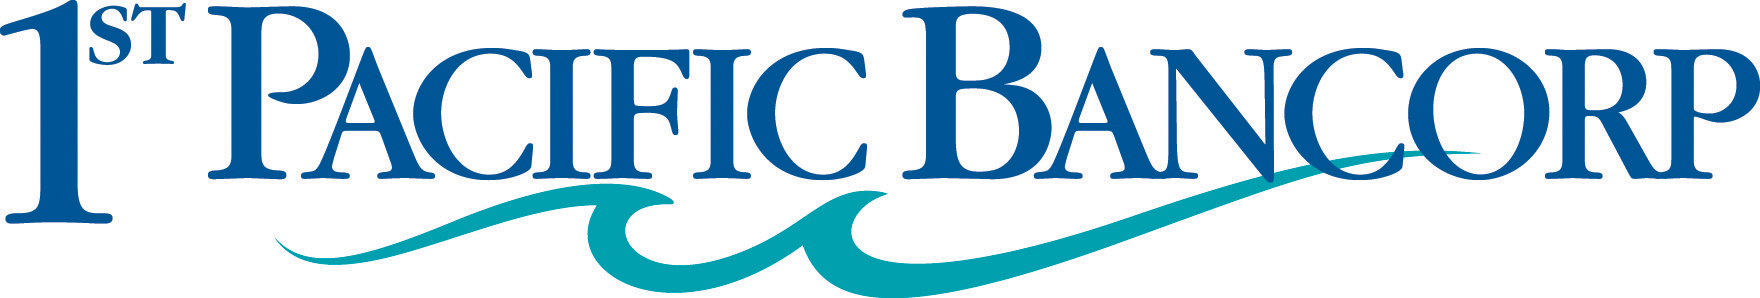 1st Pacific Bancorp Logo